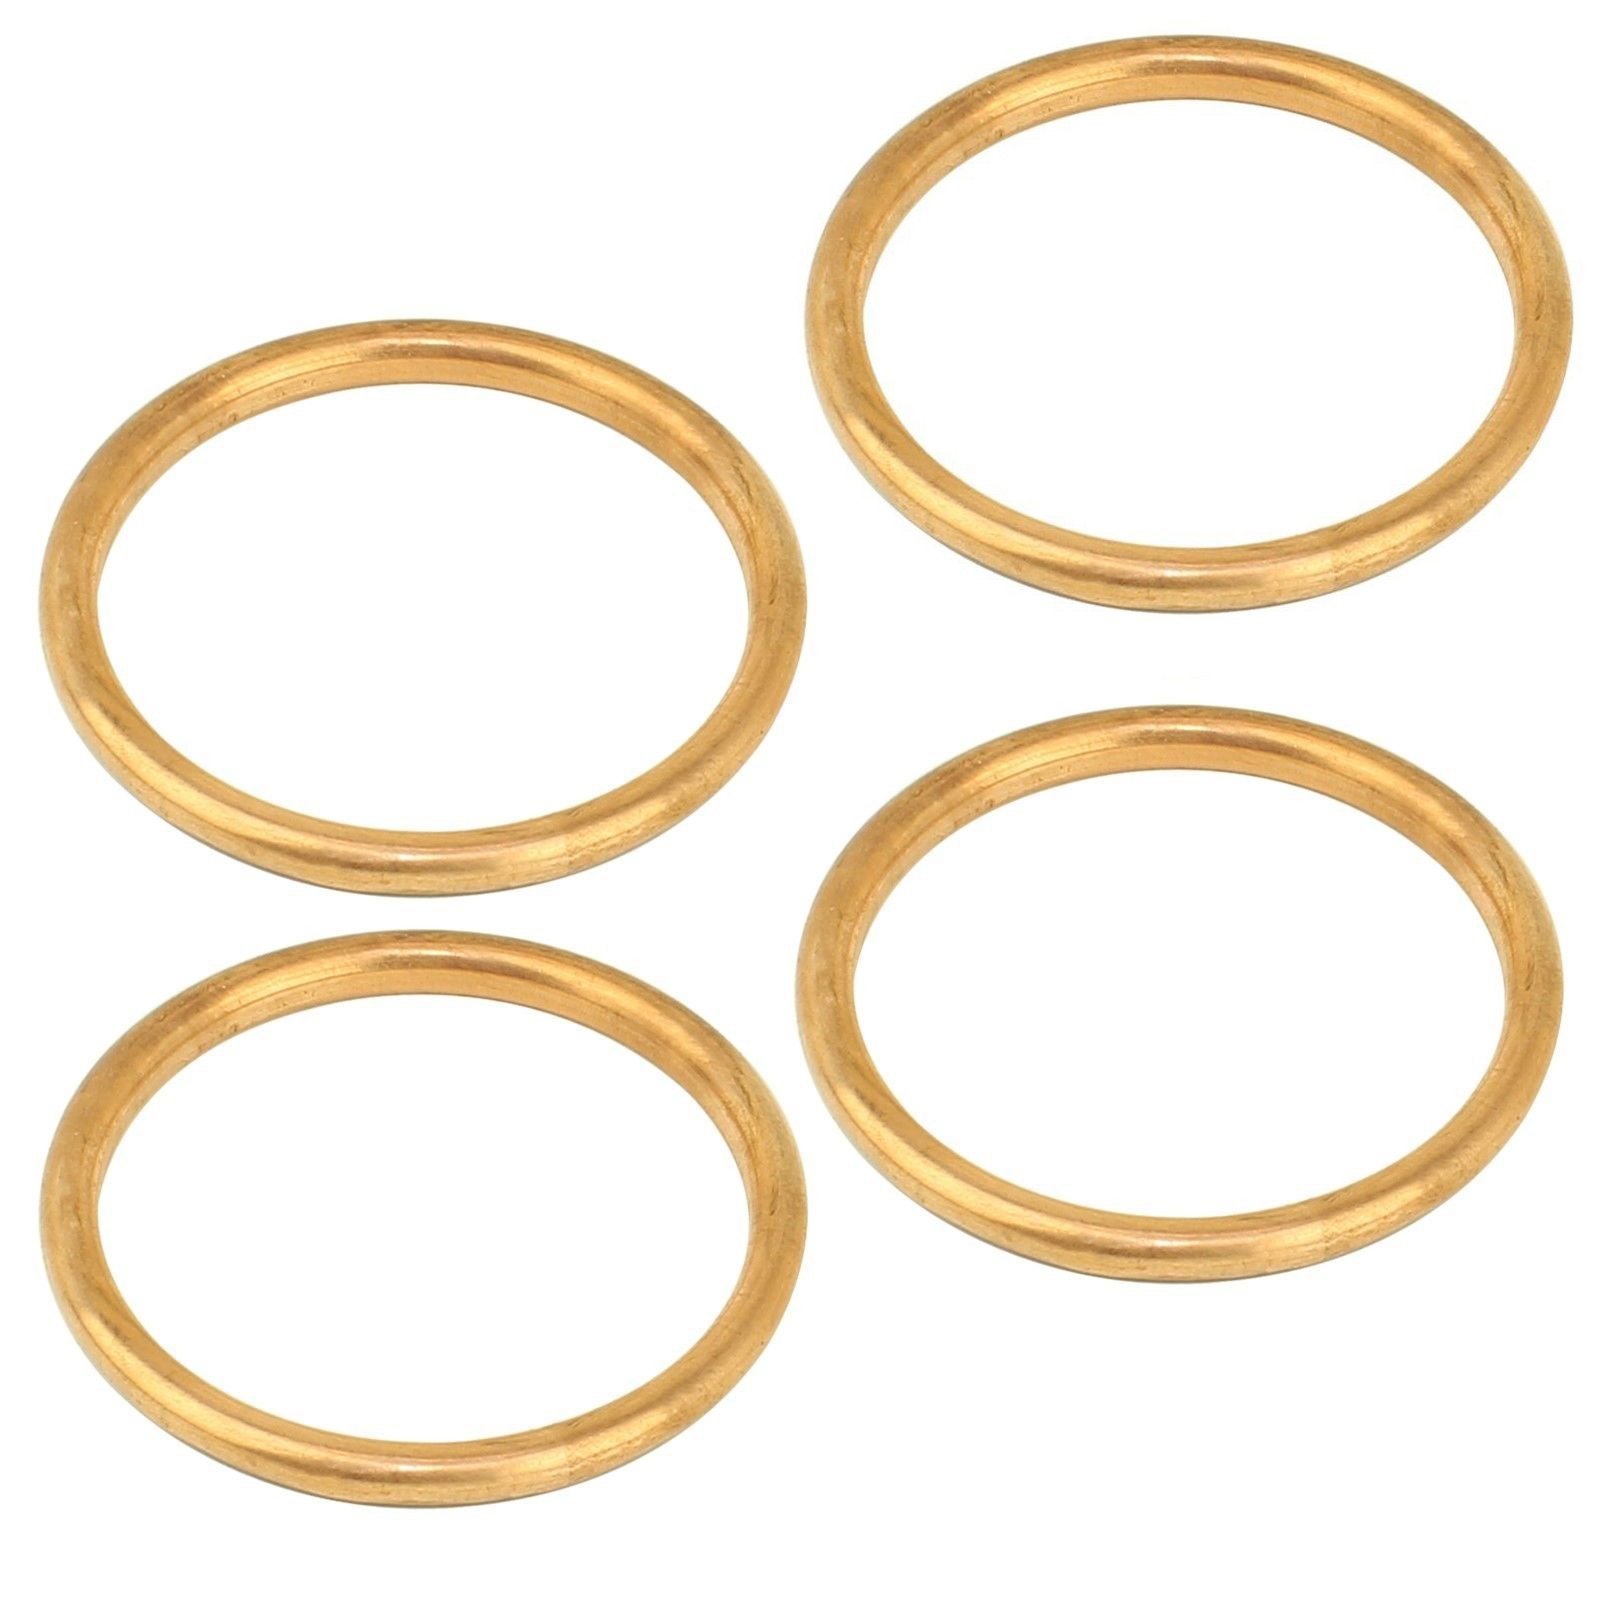 CALTRIC Exhaust Pipe Gaskets Fits HONDA GL1200 GL1200A GL1200I Goldwing 1200 1984-1987